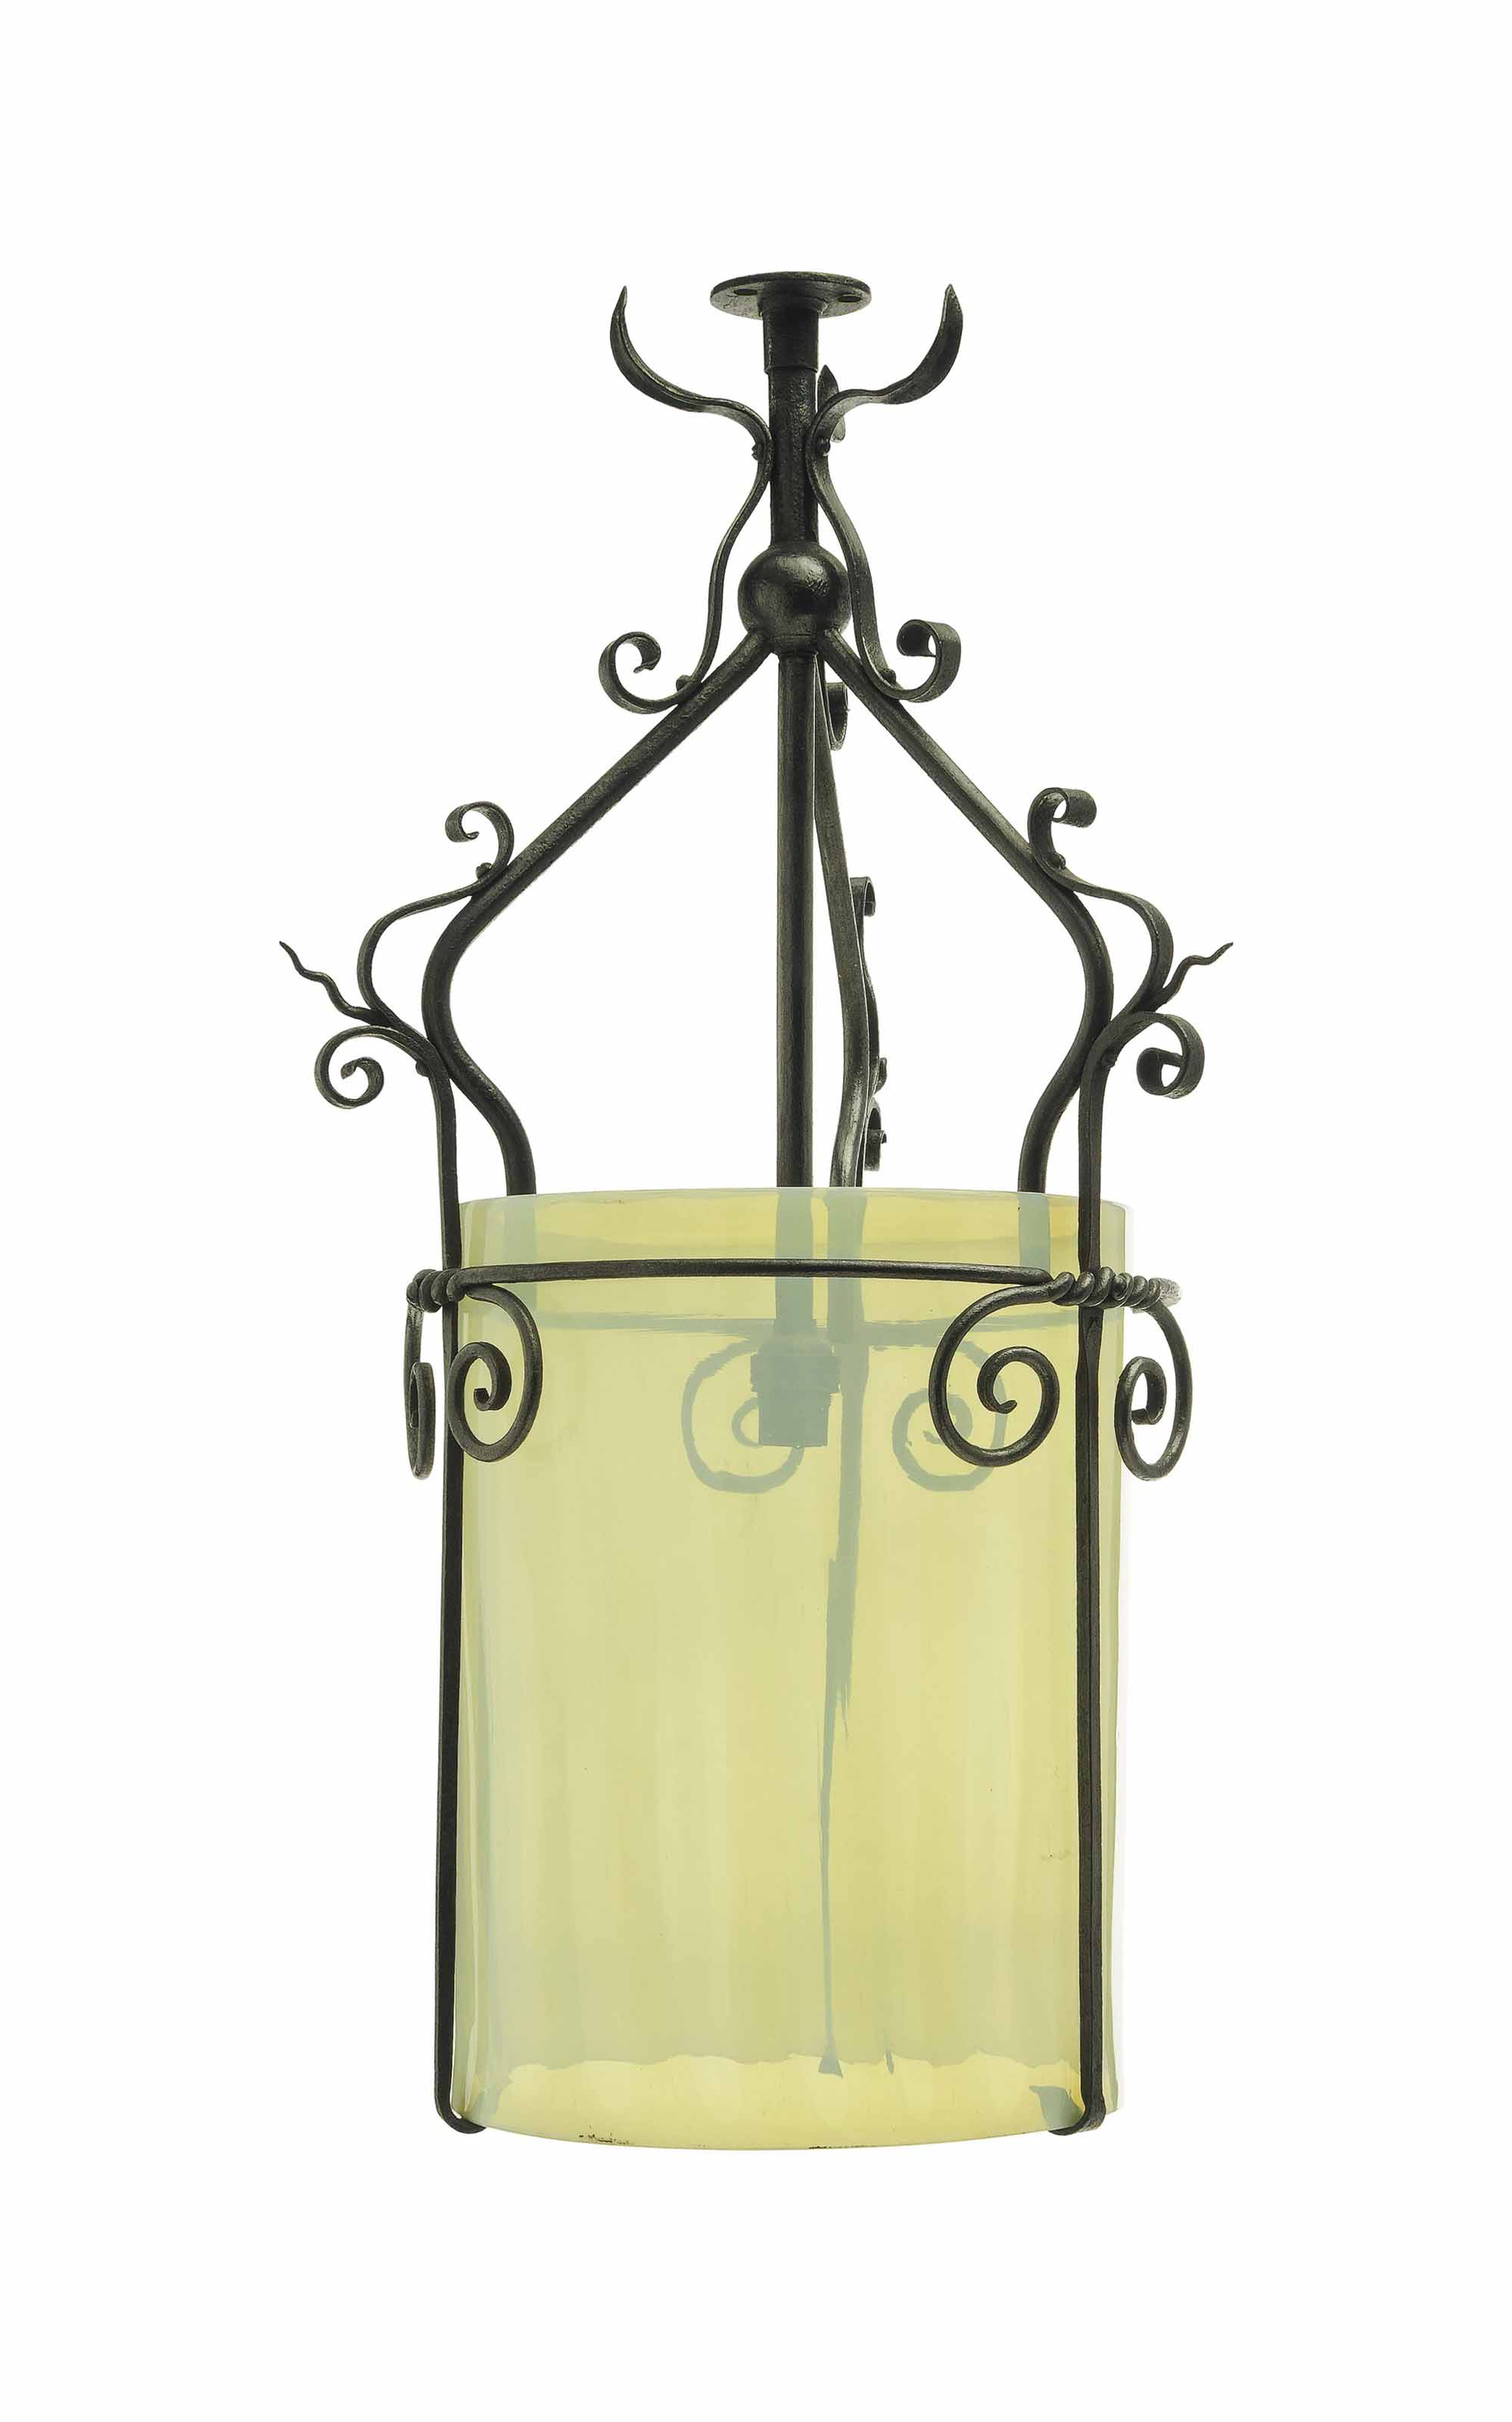 AN ARTS & CRAFTS WROUGHT-IRON AND VASELINE GLASS CEILING LIGHT, ATTRIBUTED TO W.A.S. BENSON